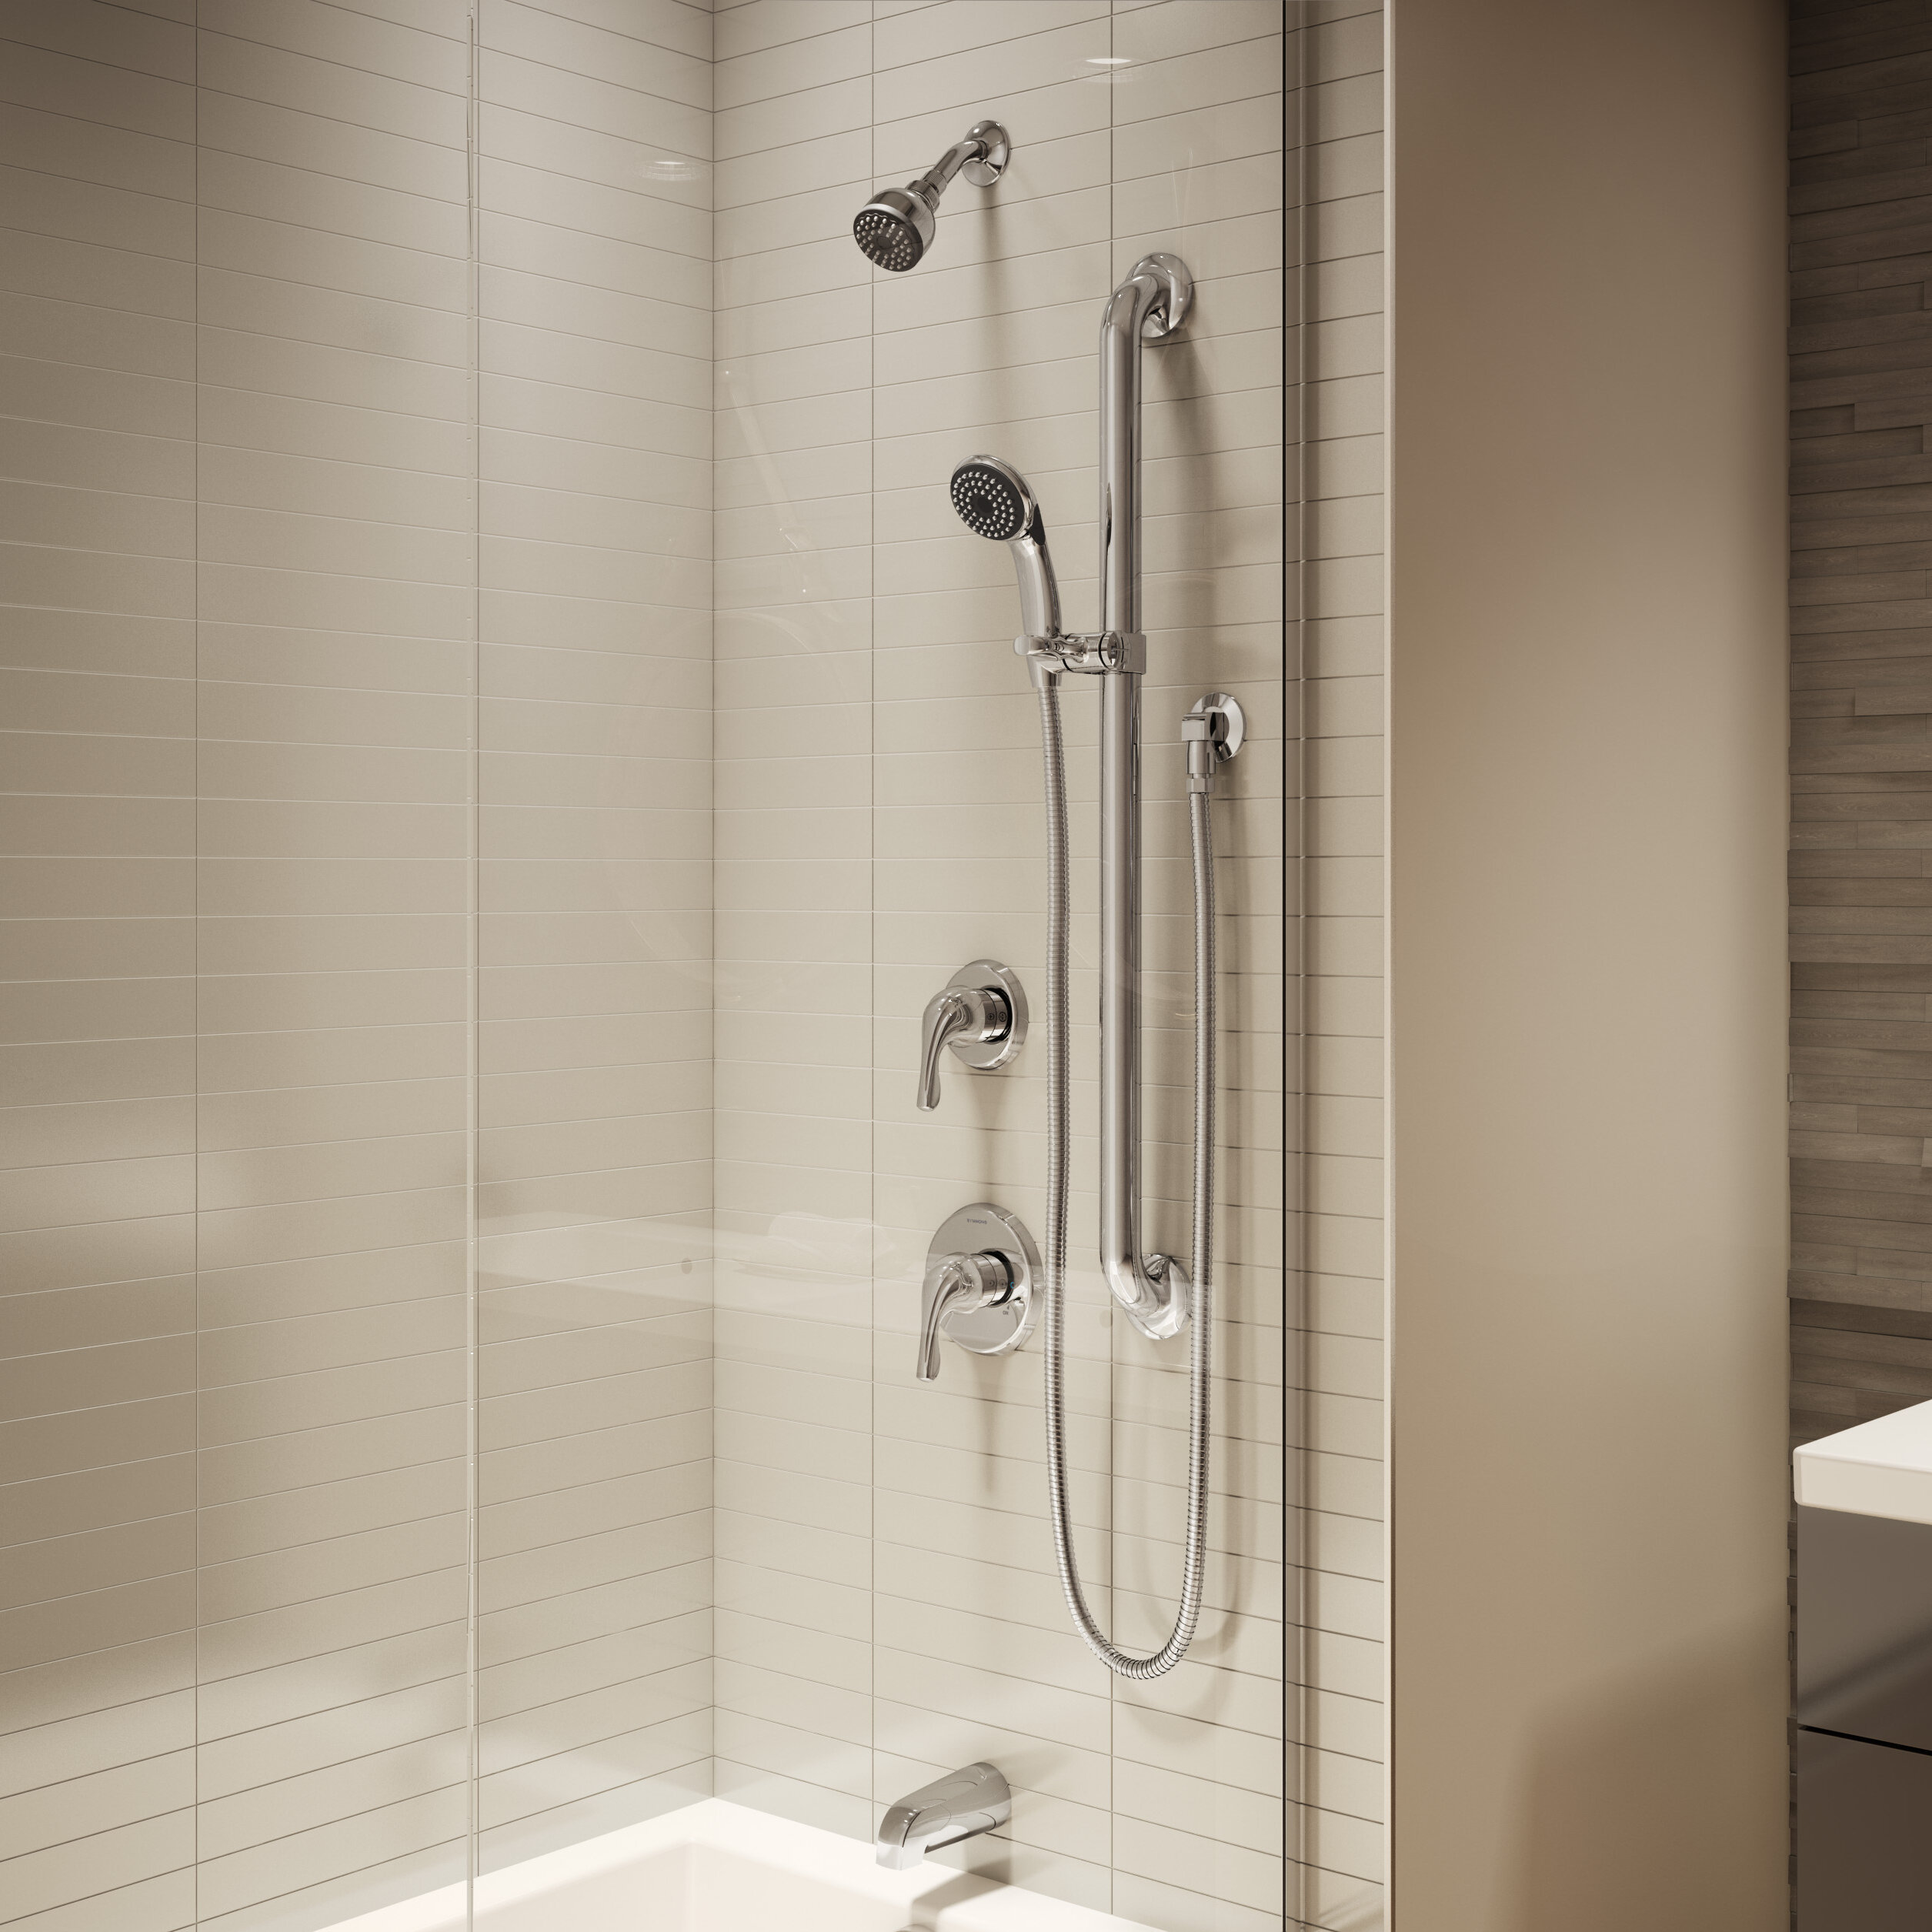 Tub And Shower Faucets Symmons Shower Faucets Systems You Ll Love In 2021 Wayfair